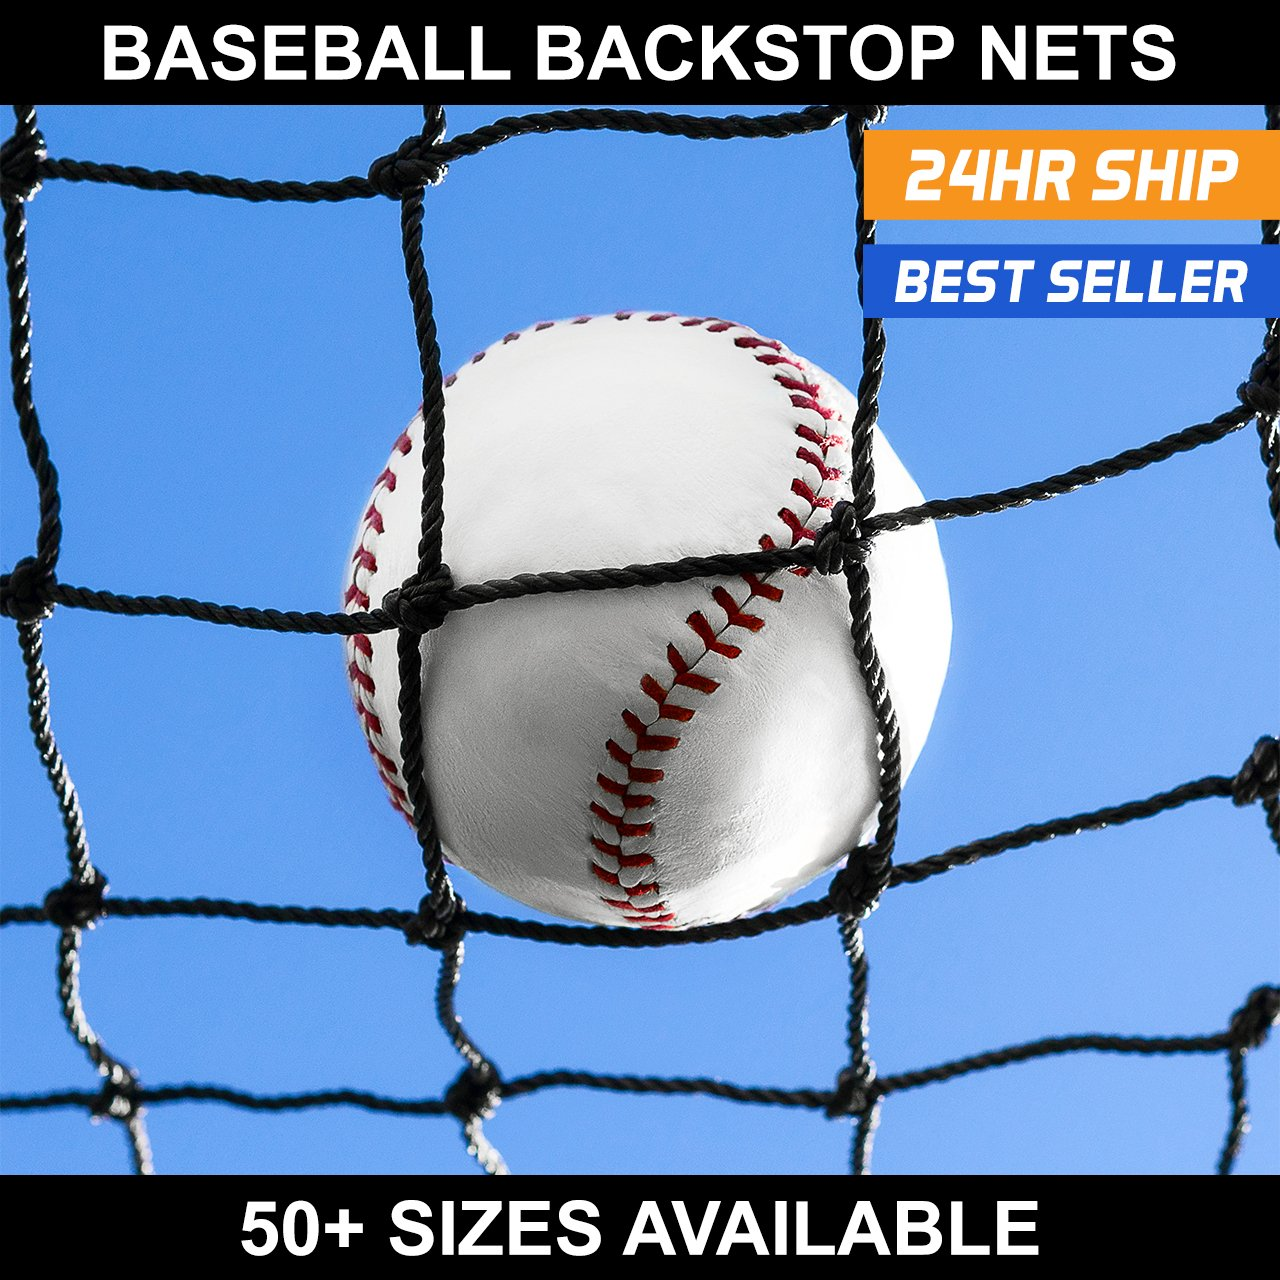 Net World Sports Baseball Backstop Nets - 50 (51. 50' x 820') by Net World Sports